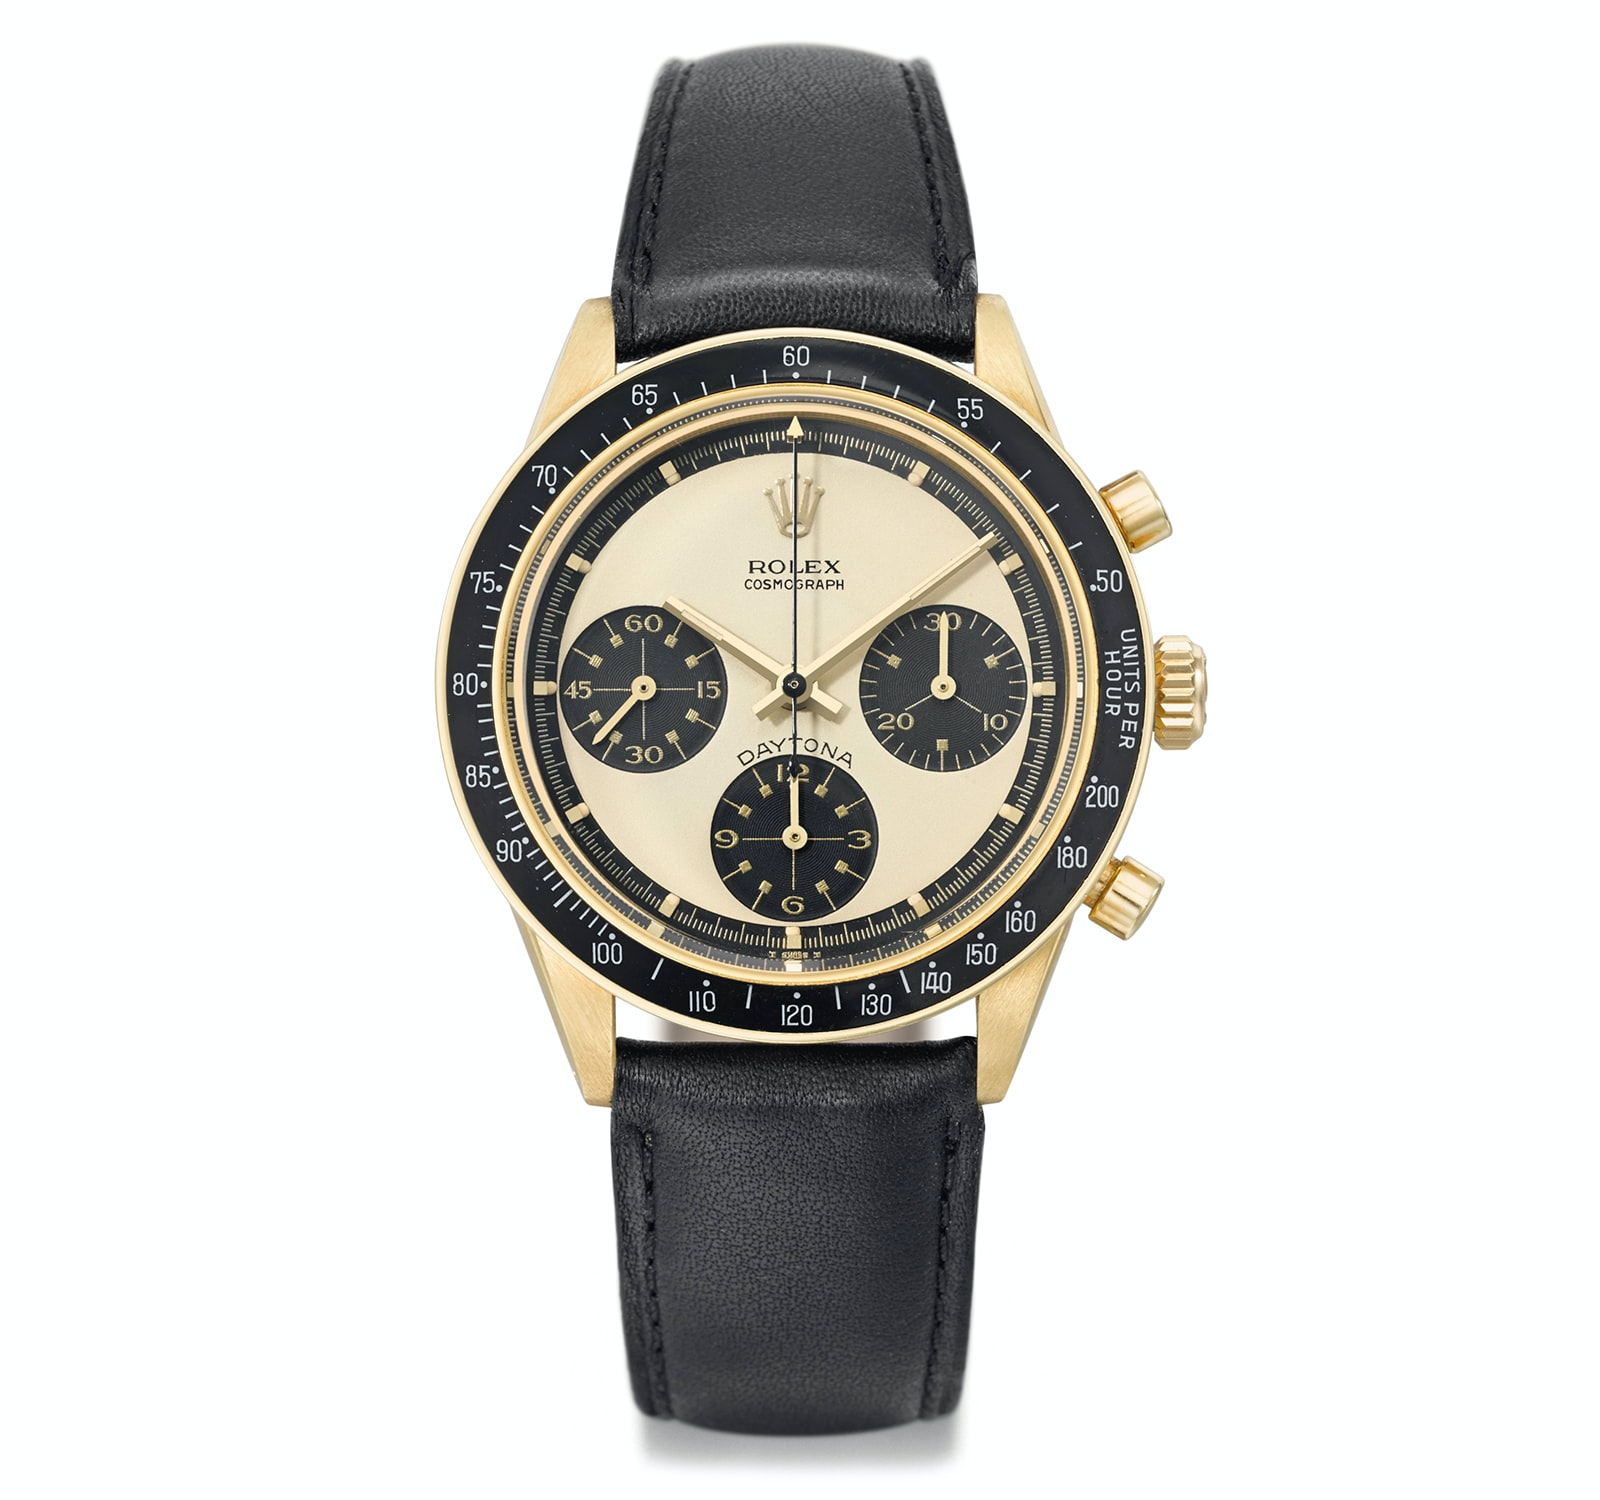 Rolex daytona Paul Newman reference 6241 Some Lessons From Christie's Latest Auction In Geneva (Spoiler Alert: Vintage Patek Is Still King) Some Lessons From Christie's Latest Auction In Geneva (Spoiler Alert: Vintage Patek Is Still King) cx